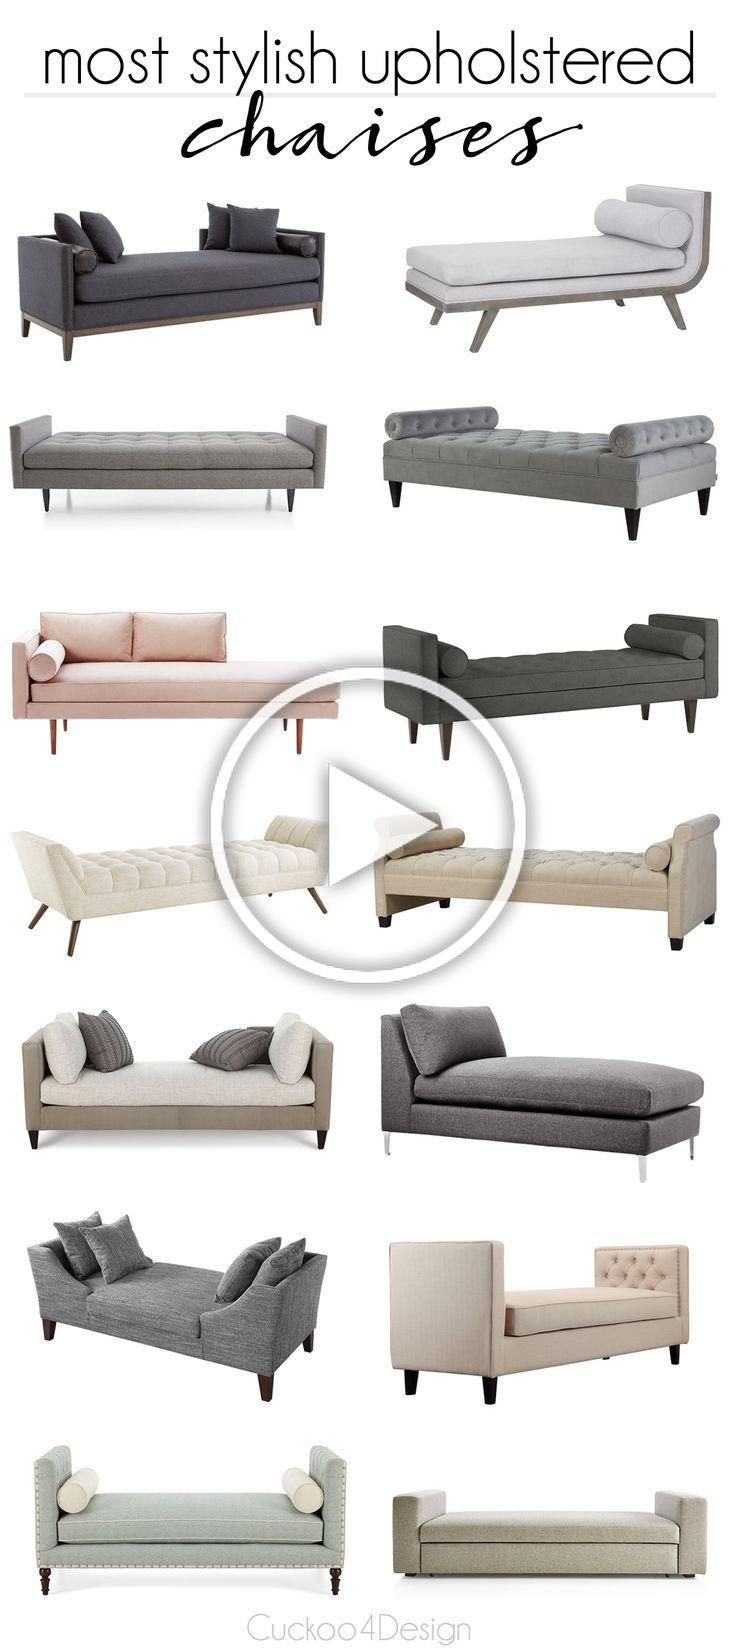 Pin By Suzy Parker On Home Ideals And Inspo Upholstered Bench Living Room Upholstered Chaise Living Room Bench Living room upholstered bench